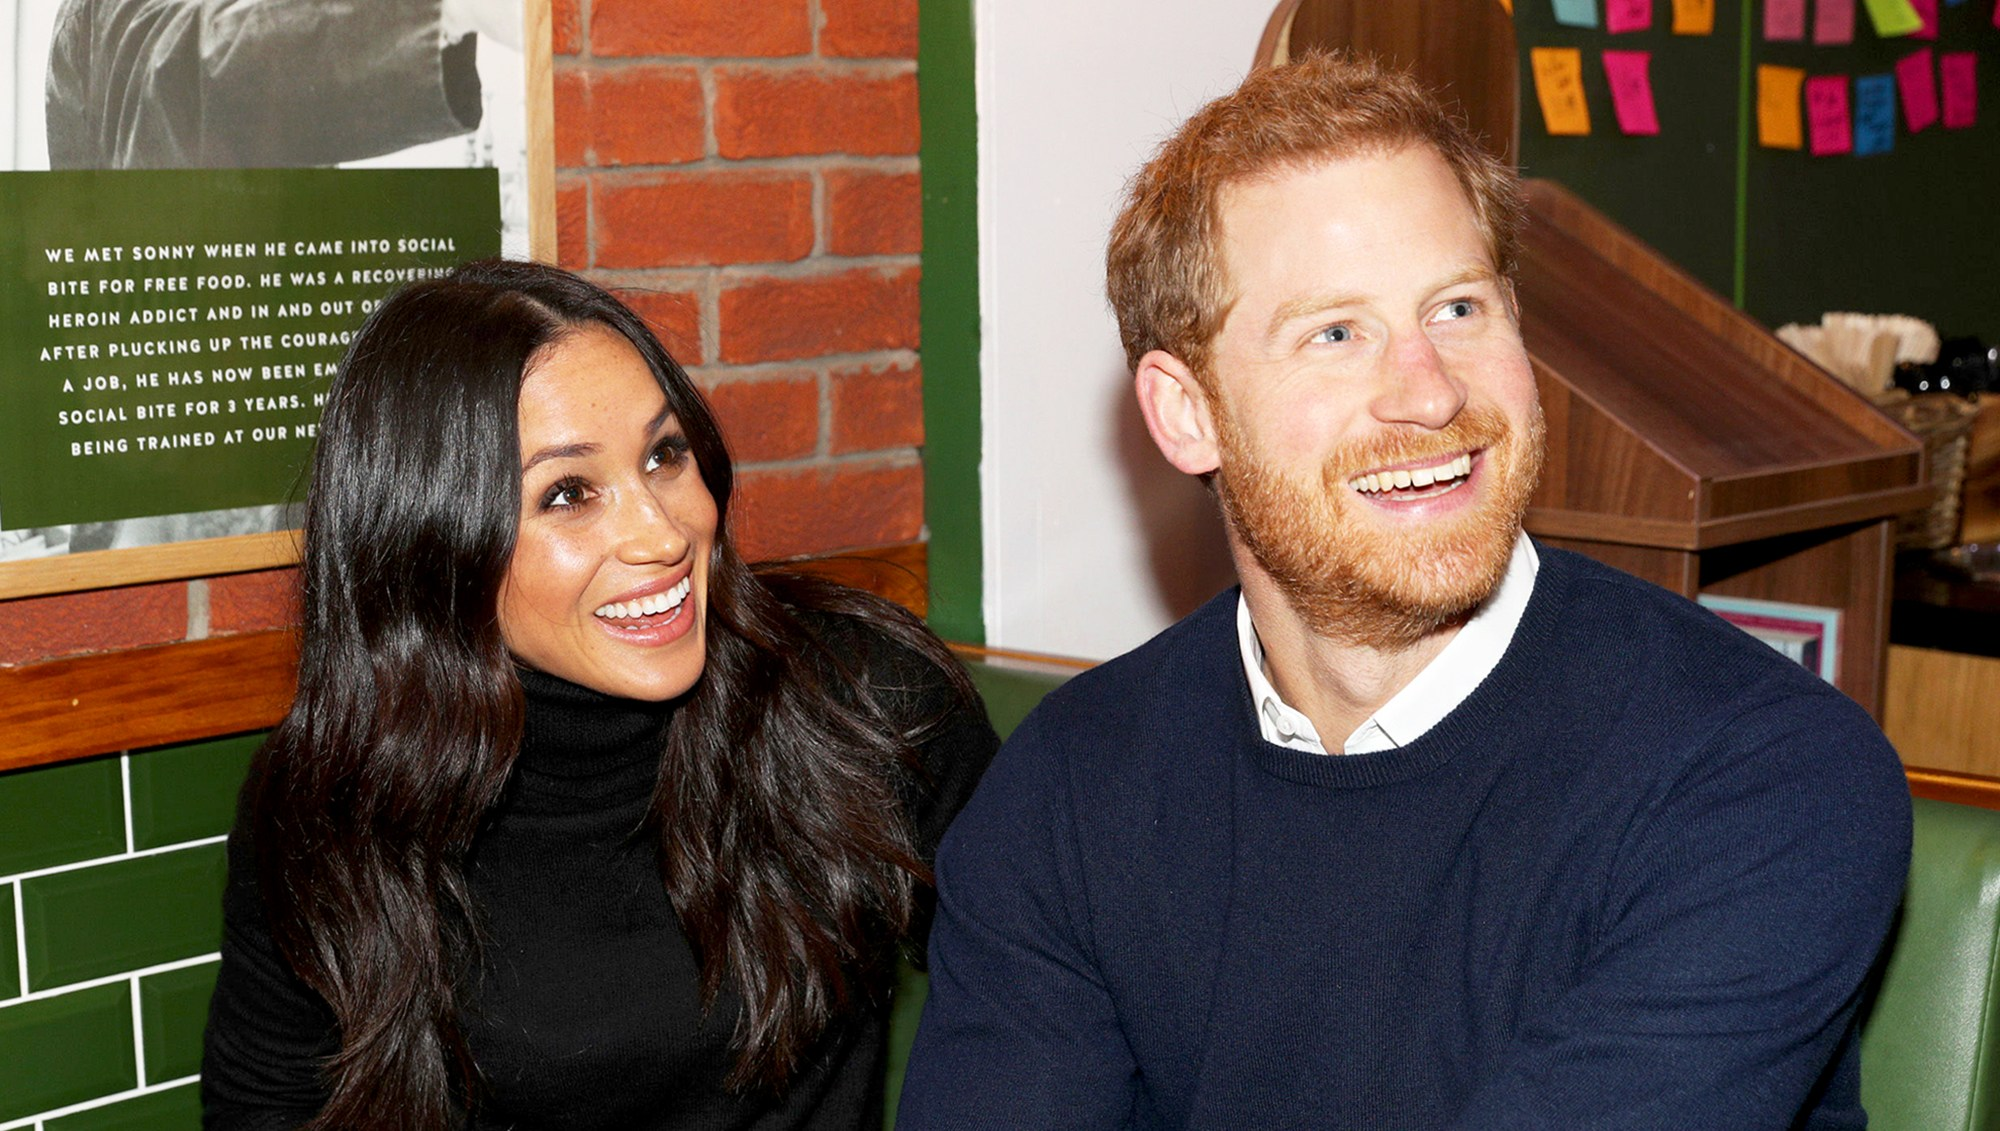 Prince Harry and Meghan Markle during a visit to Social Bite in Edinburgh, Scotland on February 13, 2018.